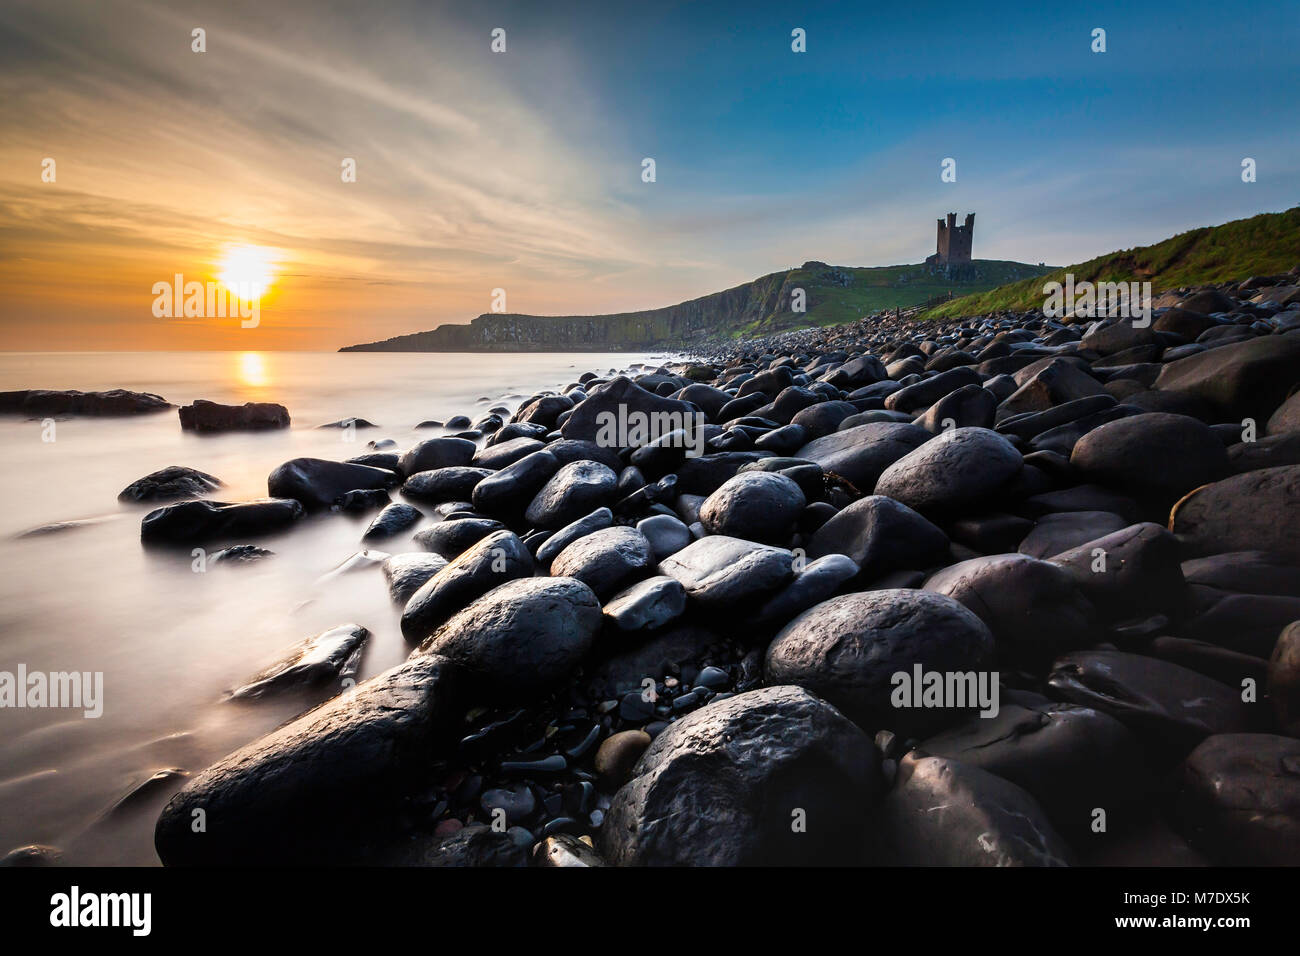 Dunstanburgh castle in Northumberland above the famous boulders in Embleton Bay. - Stock Image